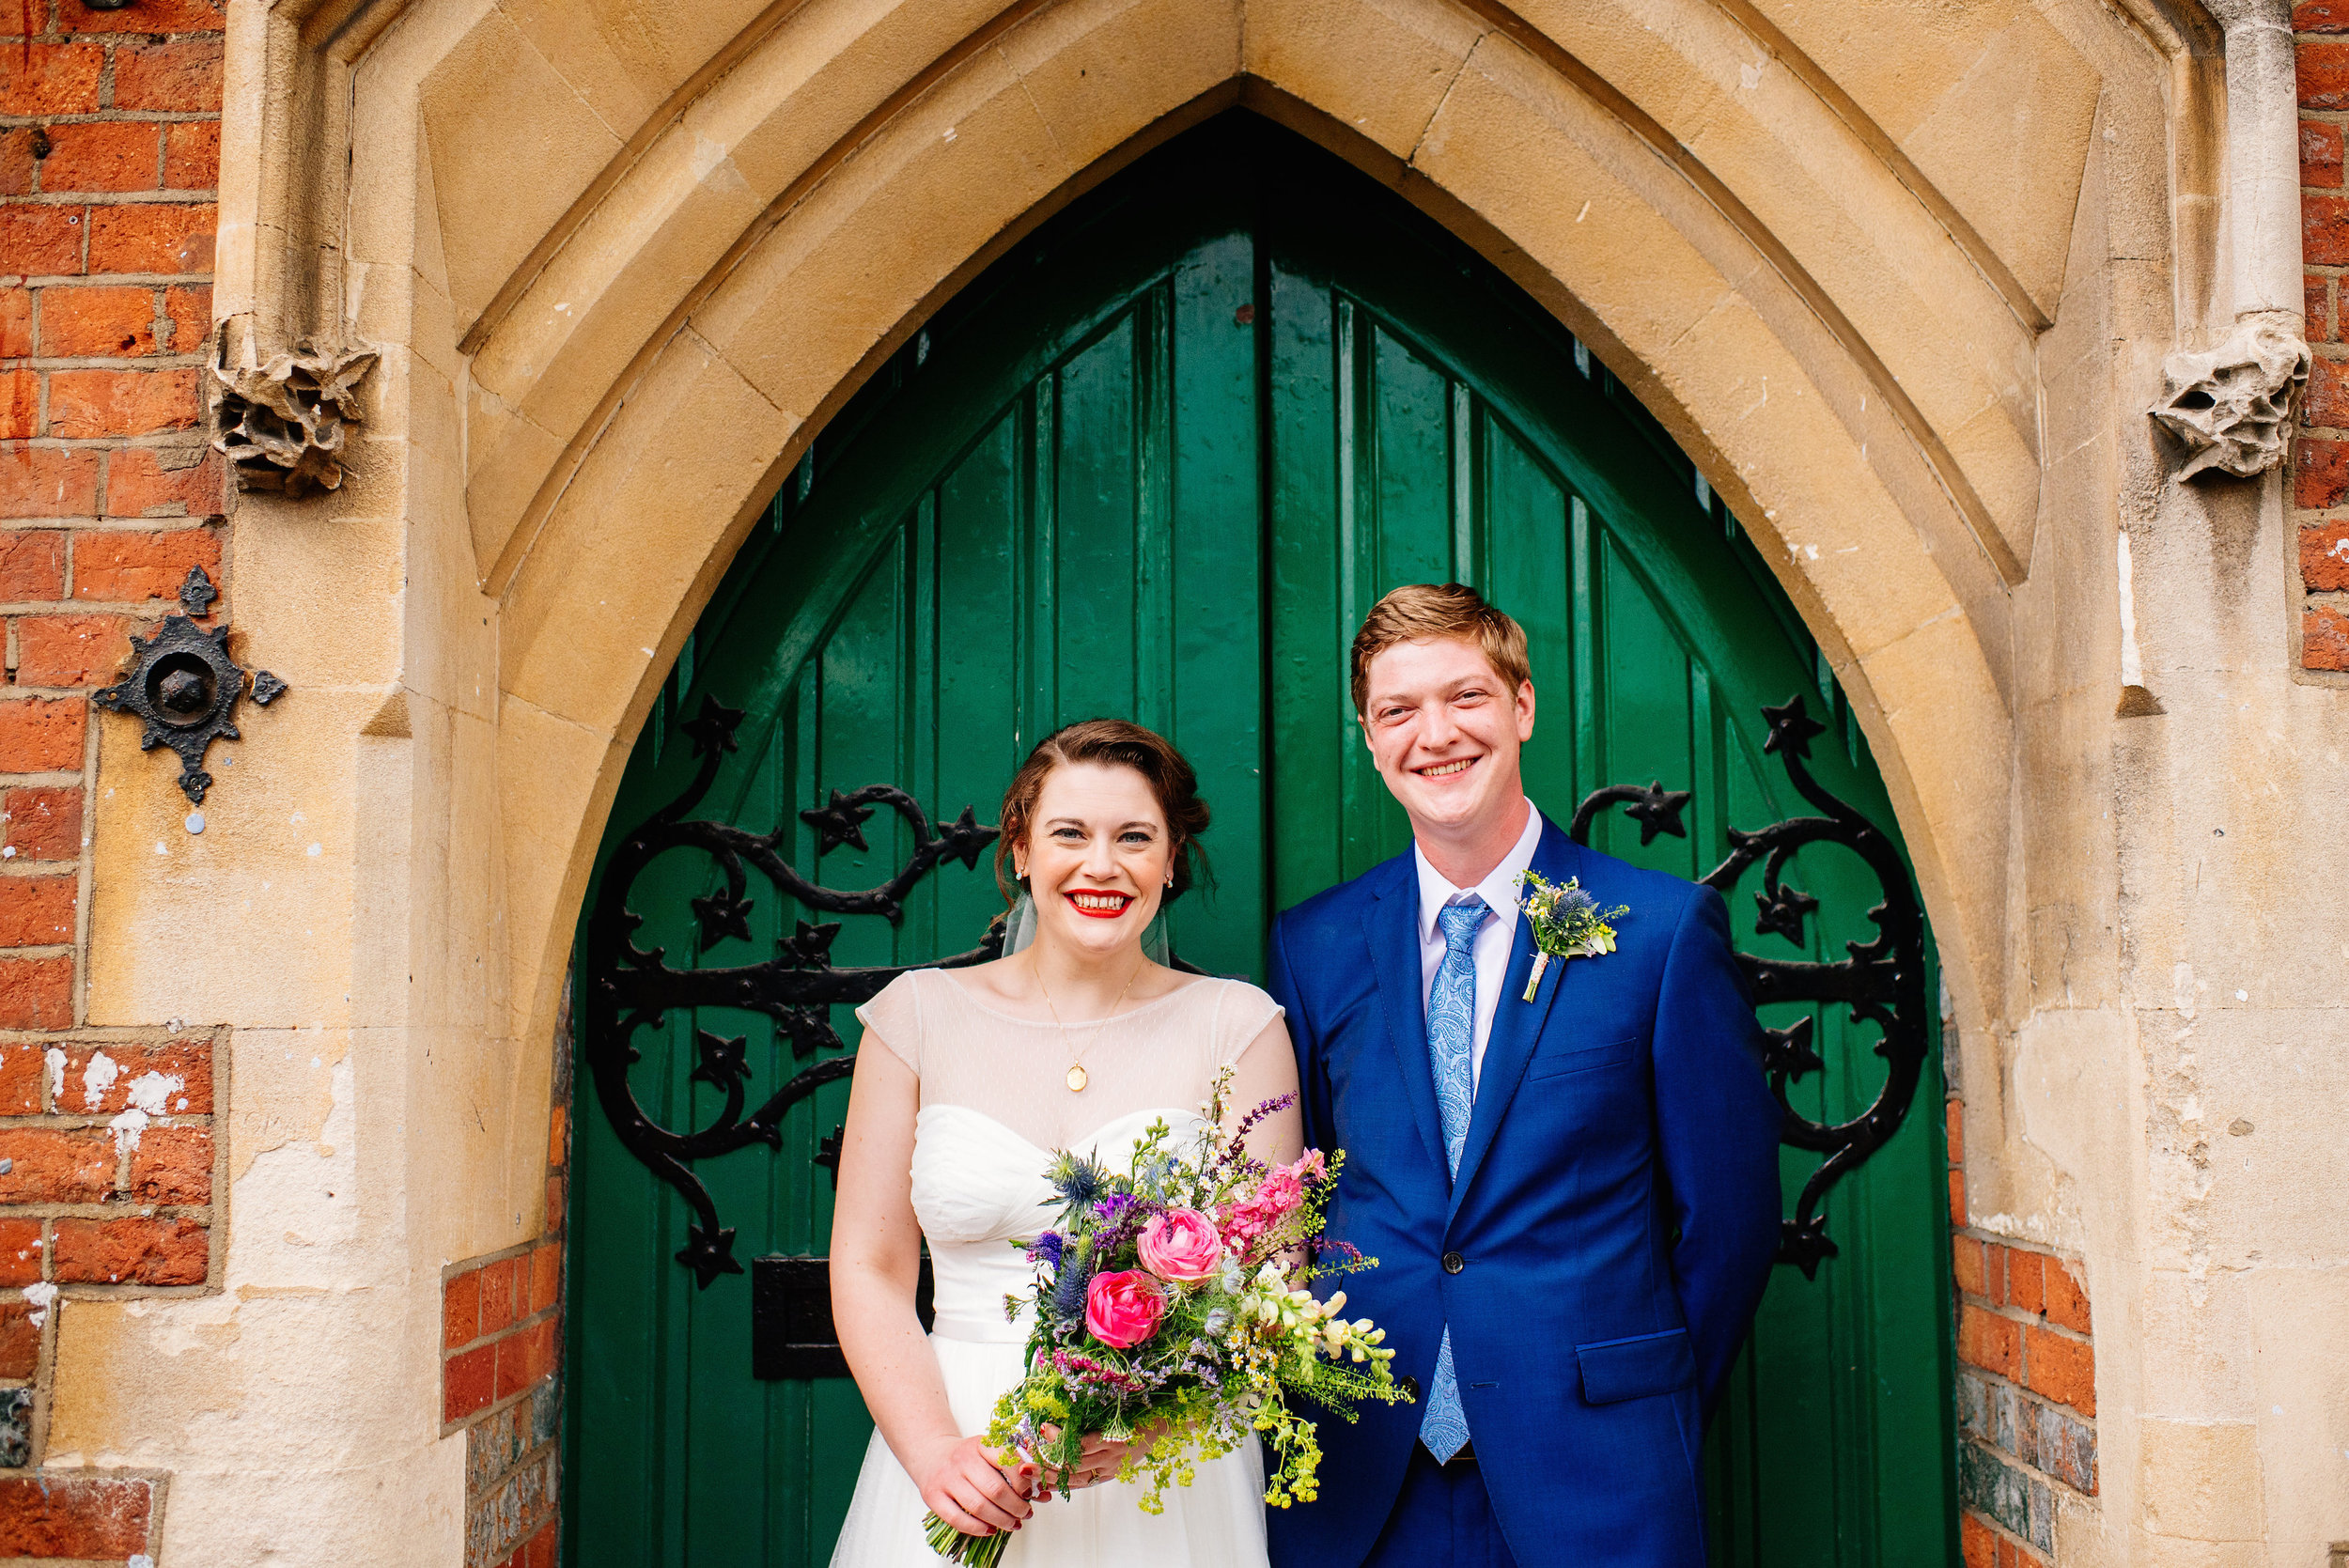 135 Emily + Daniel | Berkhamsted Towhall Wedding London Wedding Photographer Bride Groom Watford.jpg